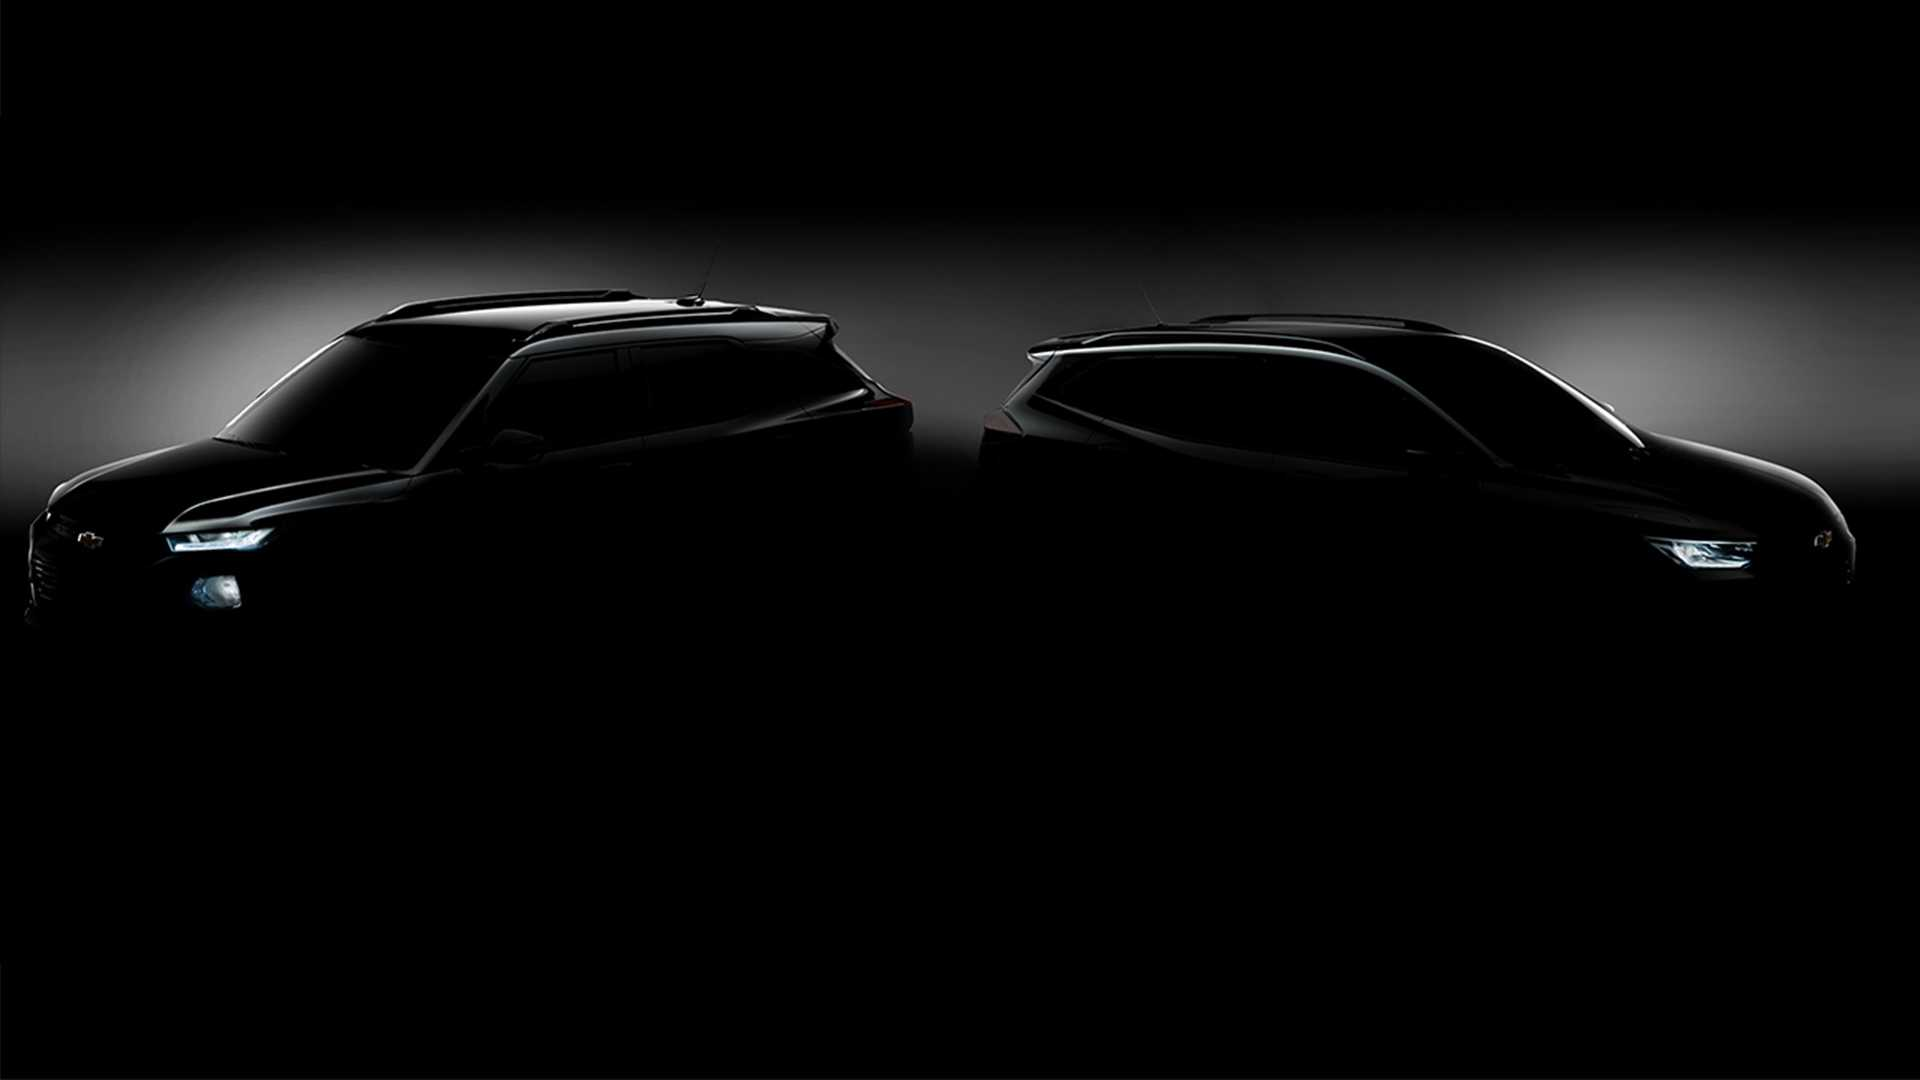 2020 Chevy Tracker And Trailblazer Show Up In Teaser